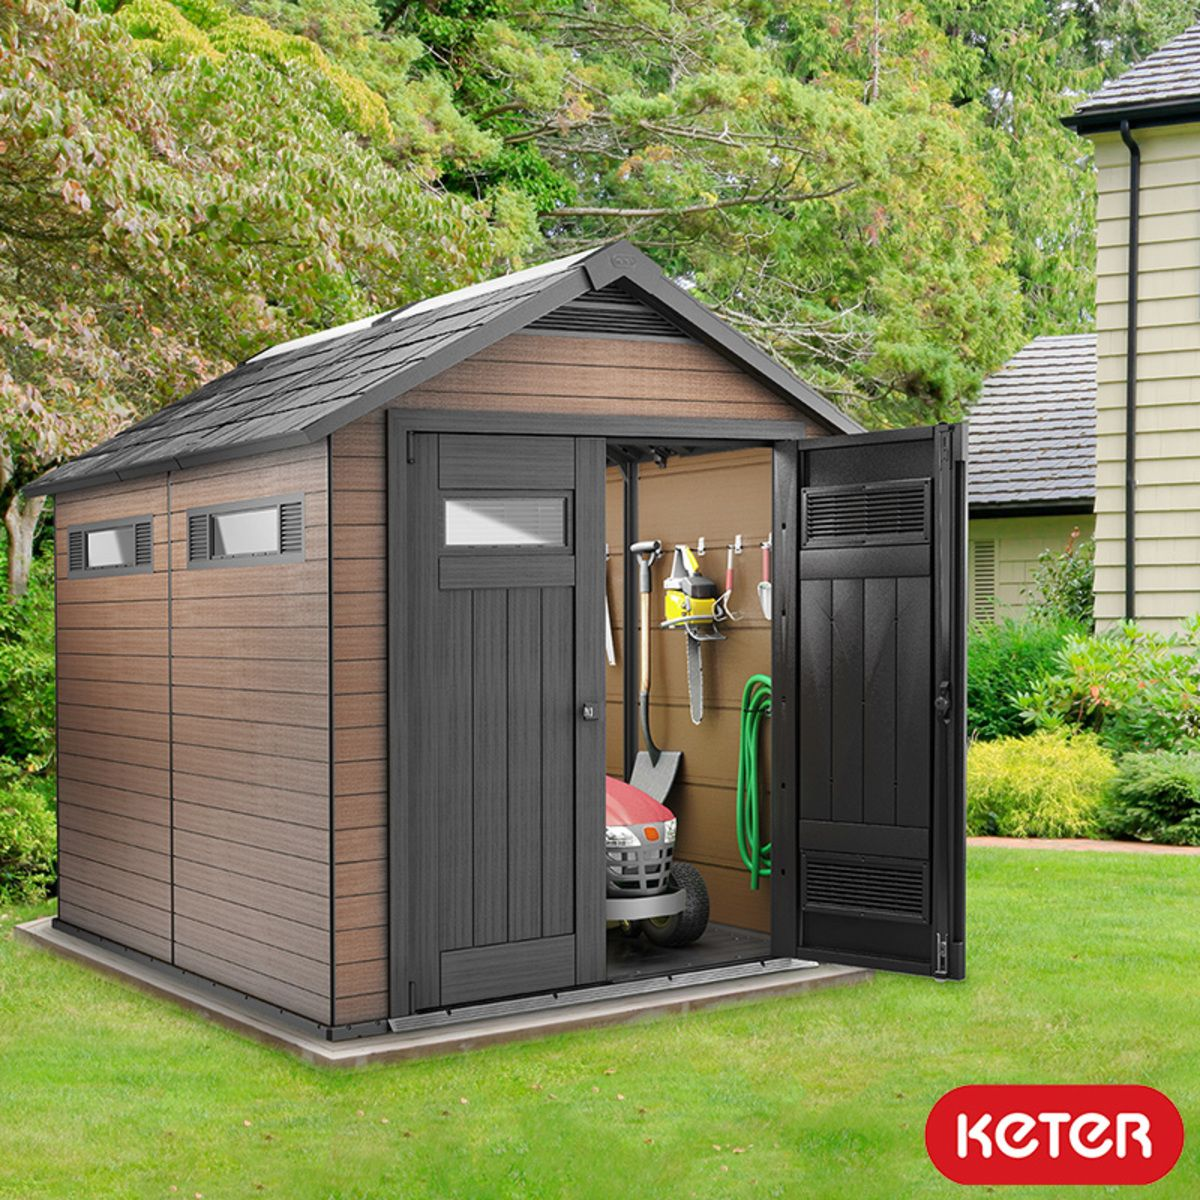 Keter Fusion 7Ft 6 X 9Ft 5 2 3 X 2 9M Shed Sheds 640 x 480